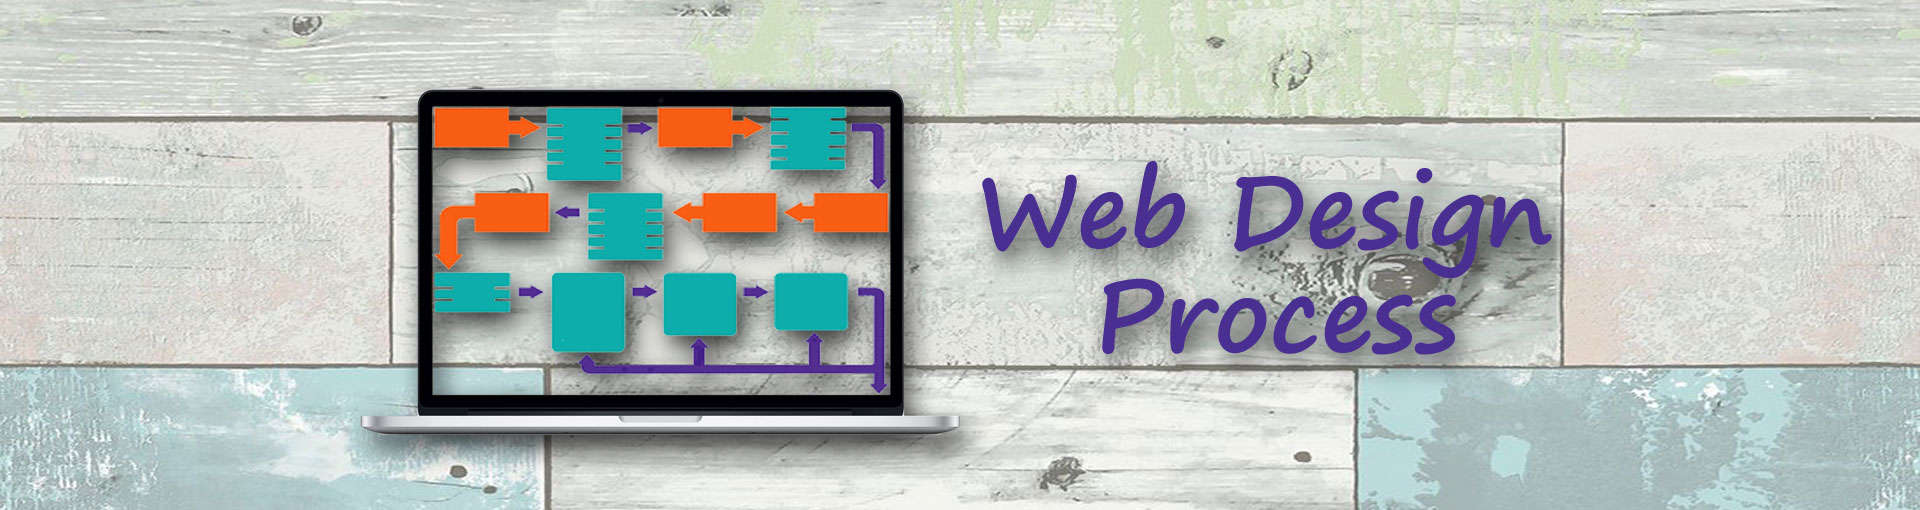 Web Design Process MBS Communications, LLC